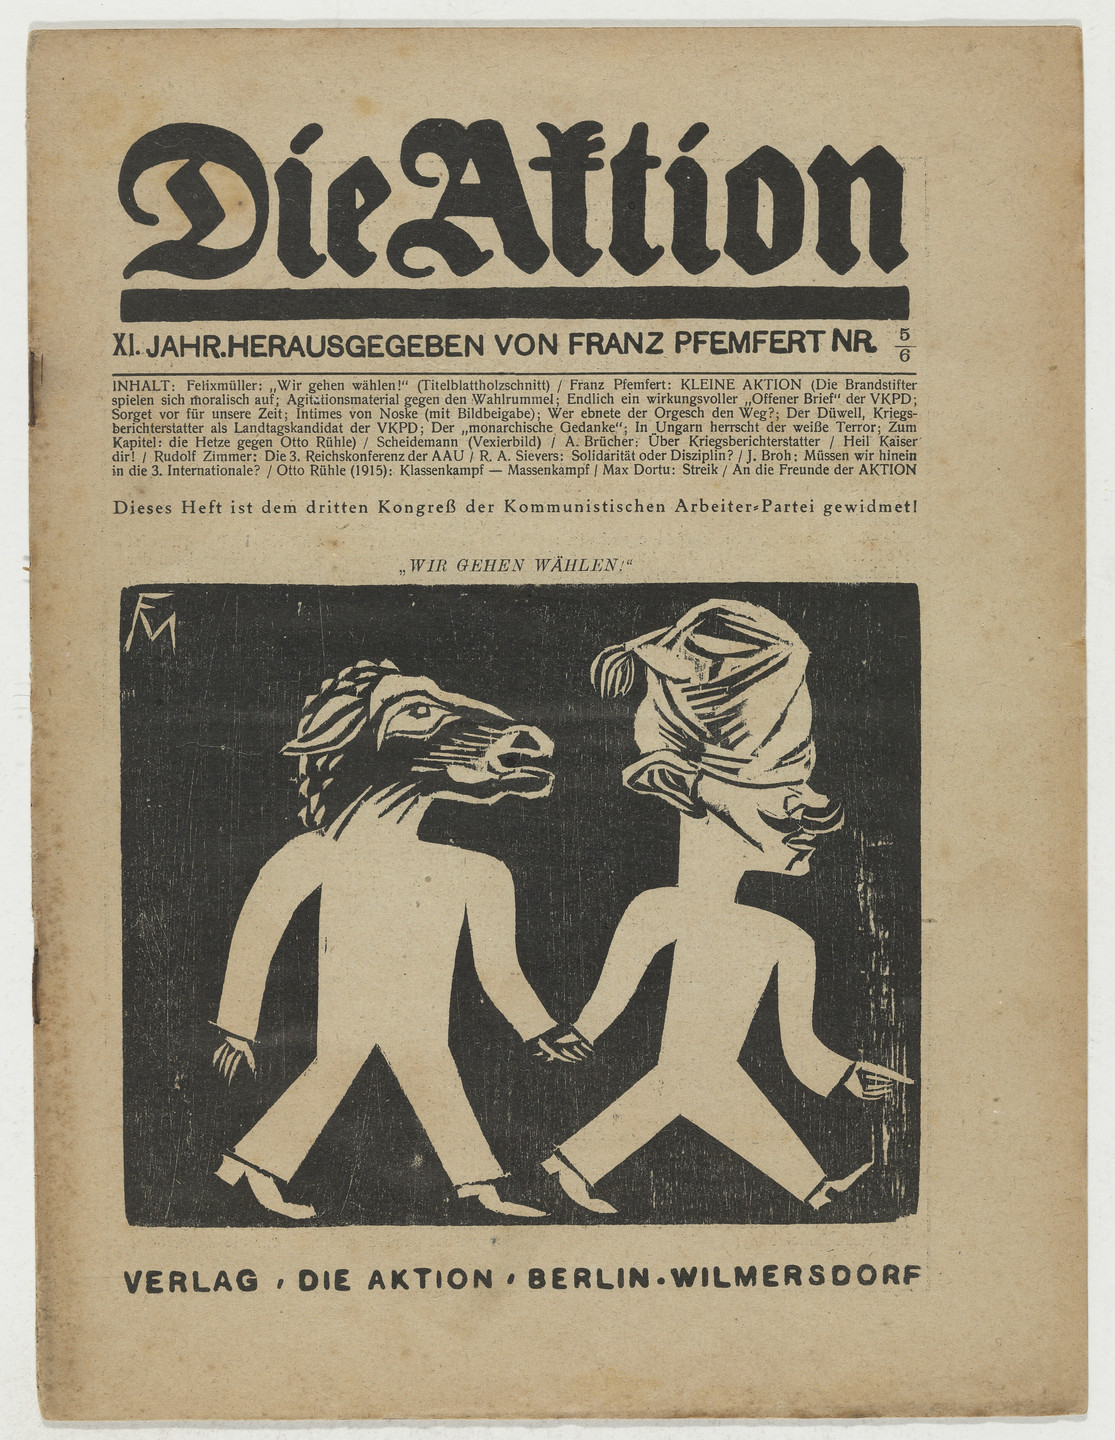 Conrad Felixmüller. Die Aktion, vol. 11, no. 5/6. February 5, 1921